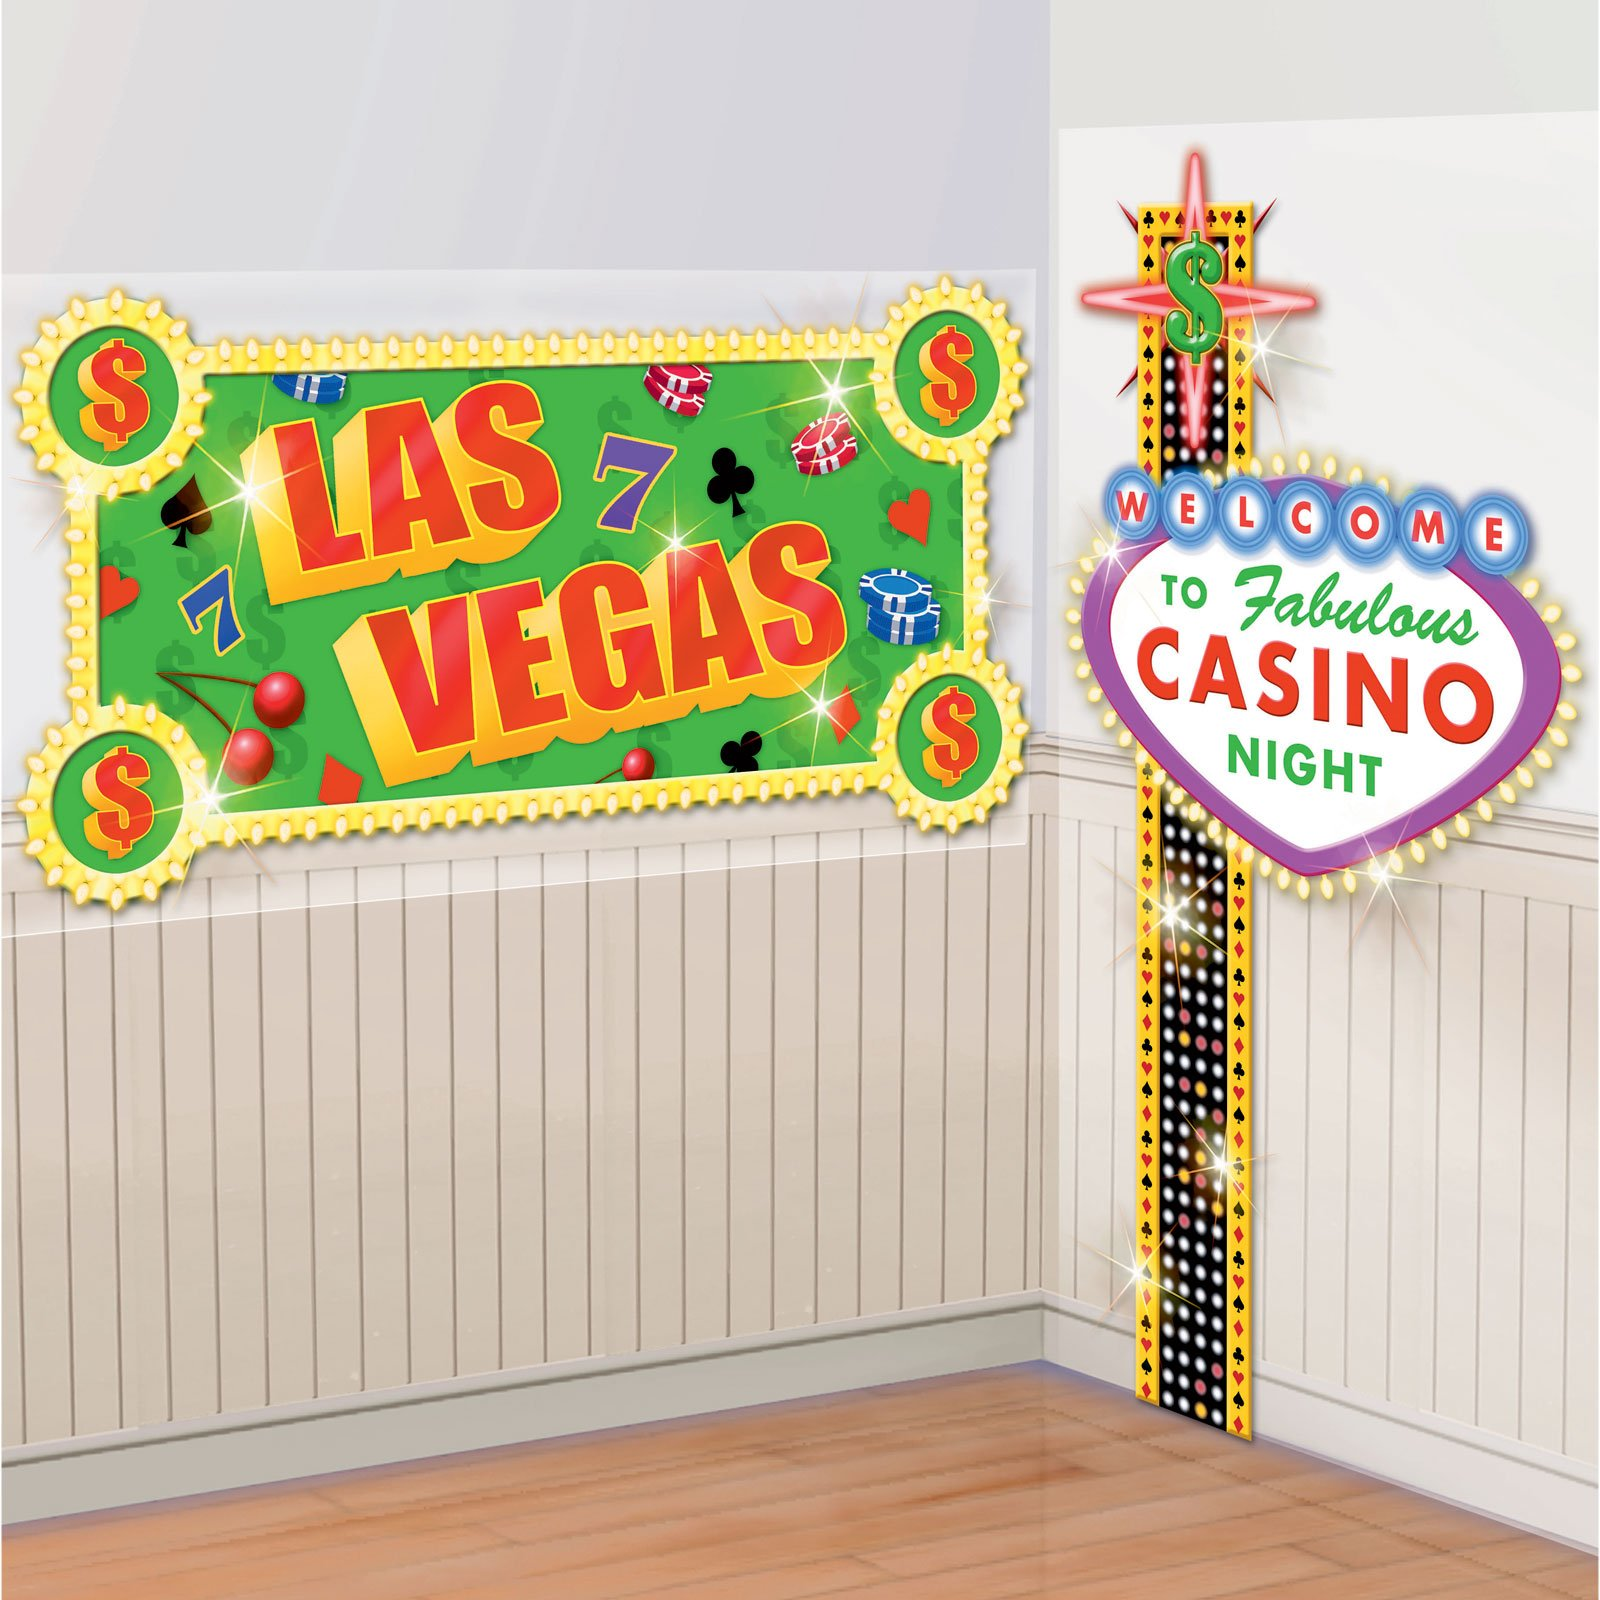 5'-Las-Vegas-Casino-Welcome-decoration